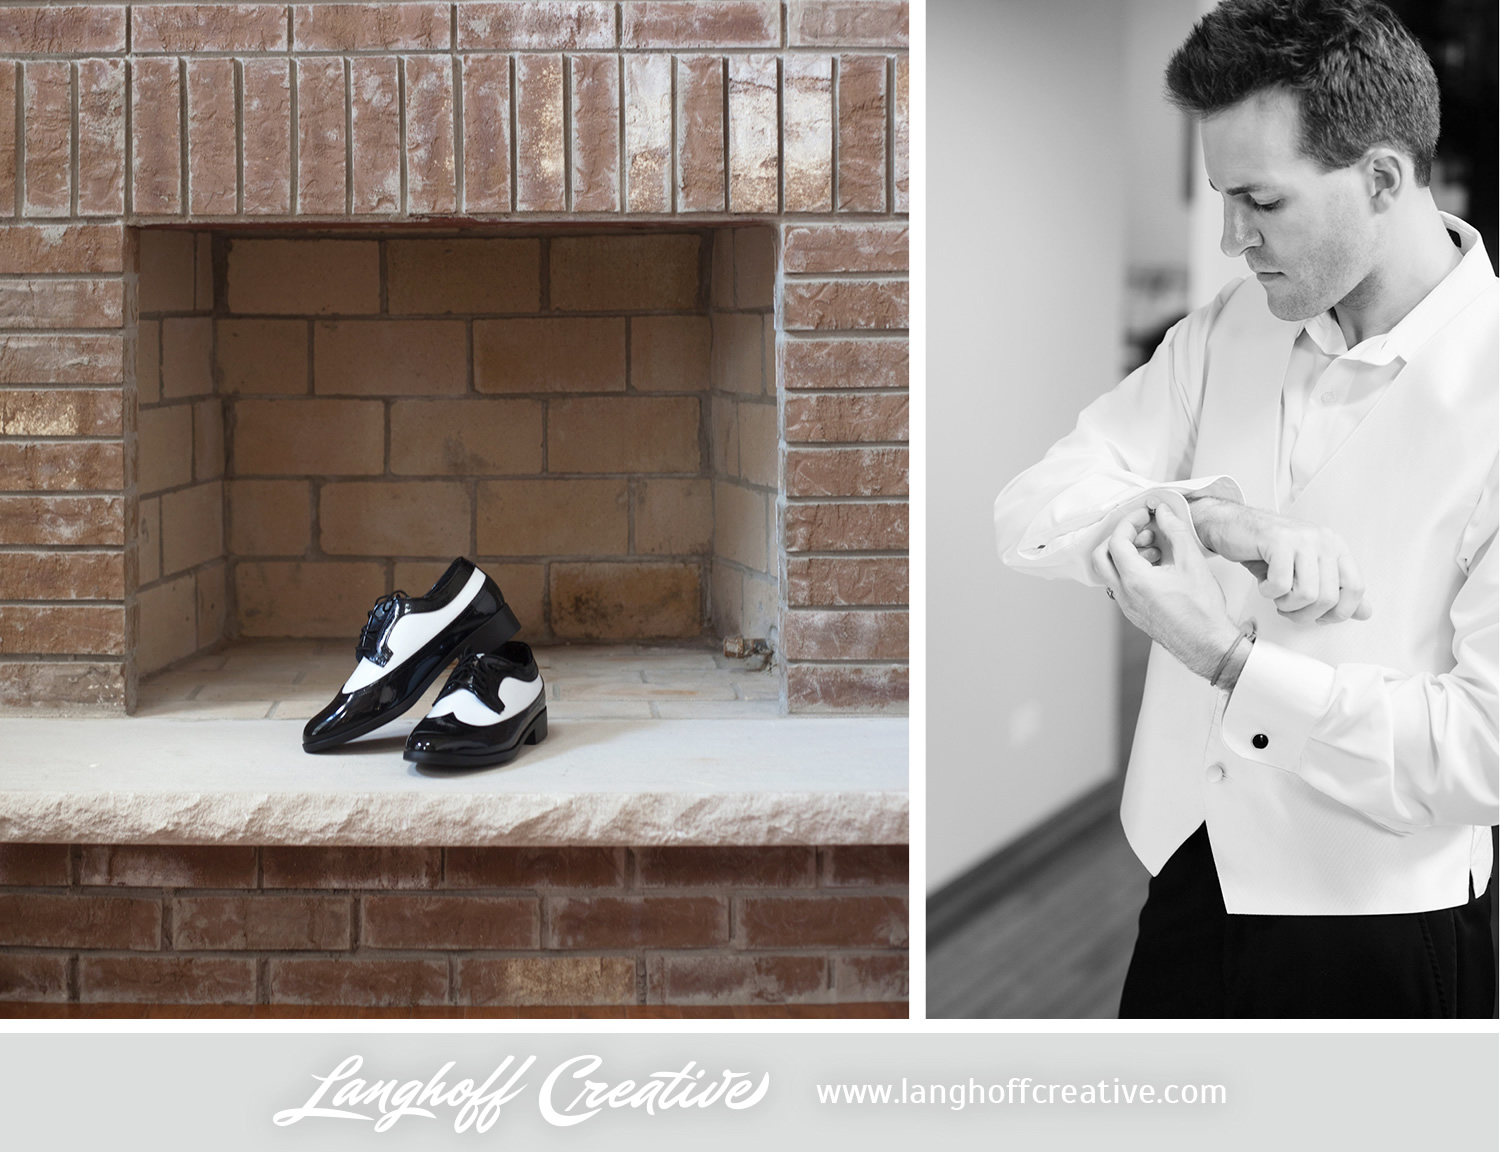 PlainfieldWedding-2013-LanghoffCreative-MattErin-4-photo.jpg